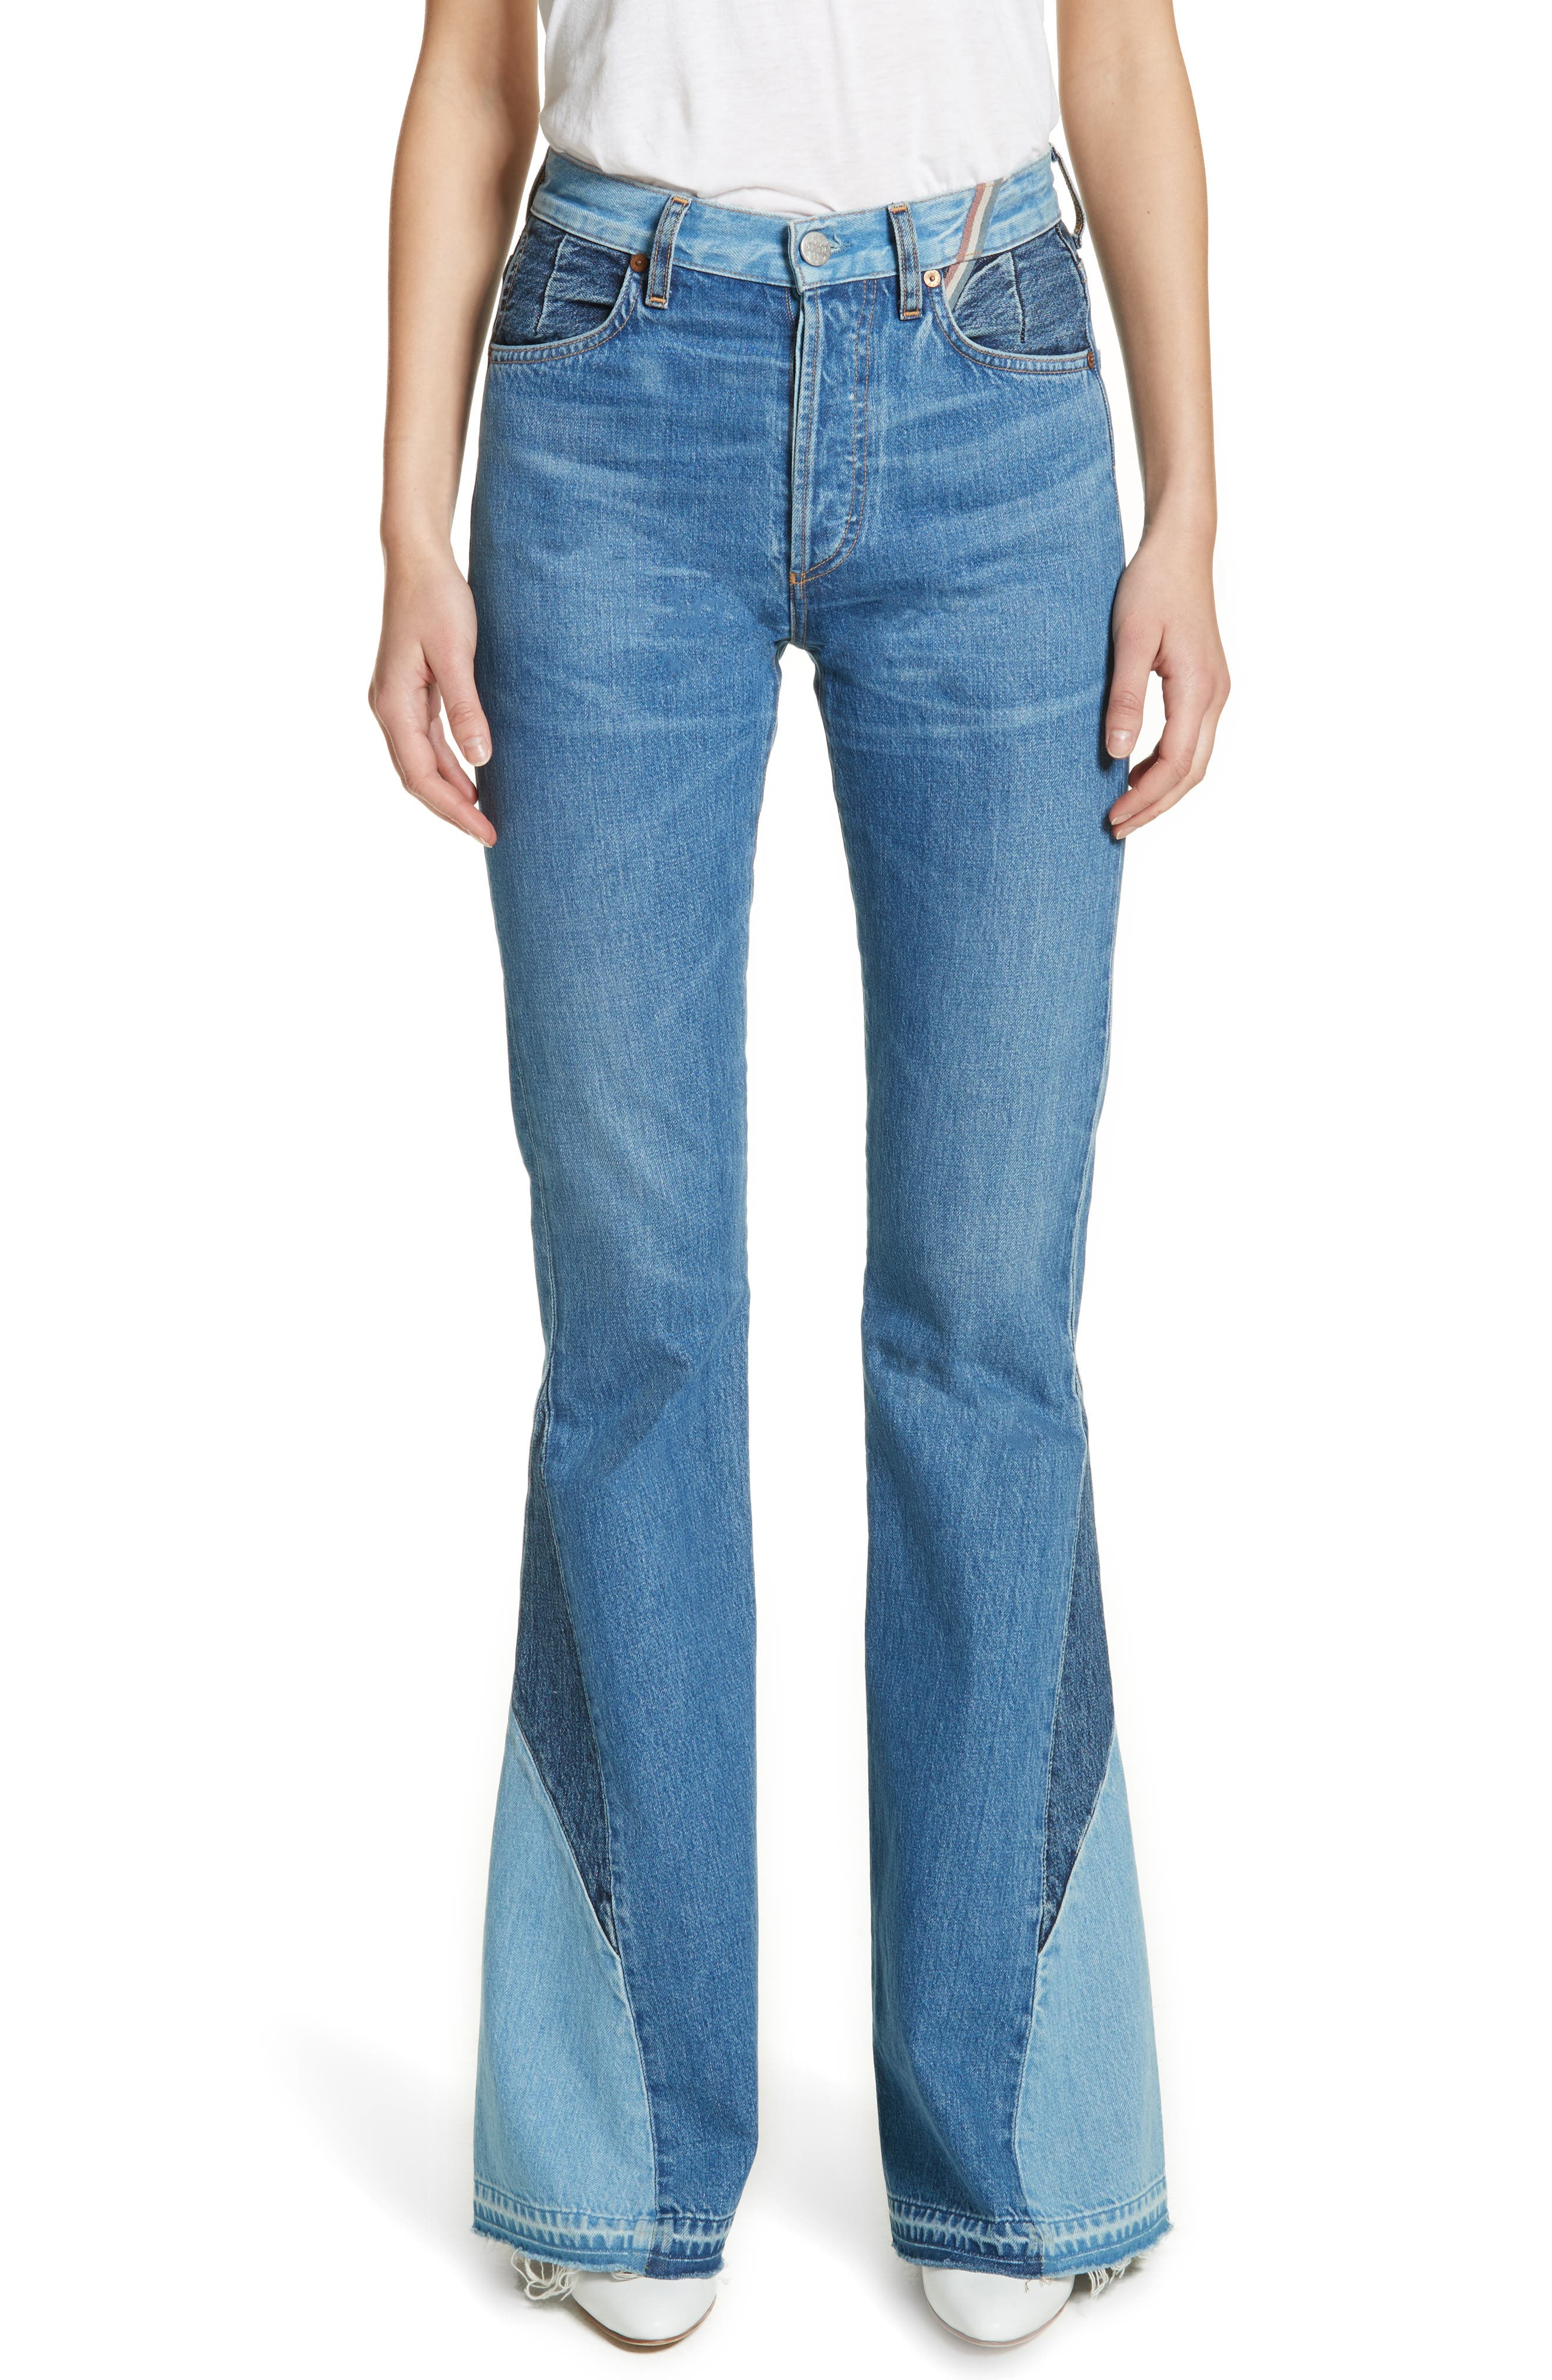 Alternate Image 1 Selected - Jean Atelier Janis High Rise Flare Jeans (Jagger)